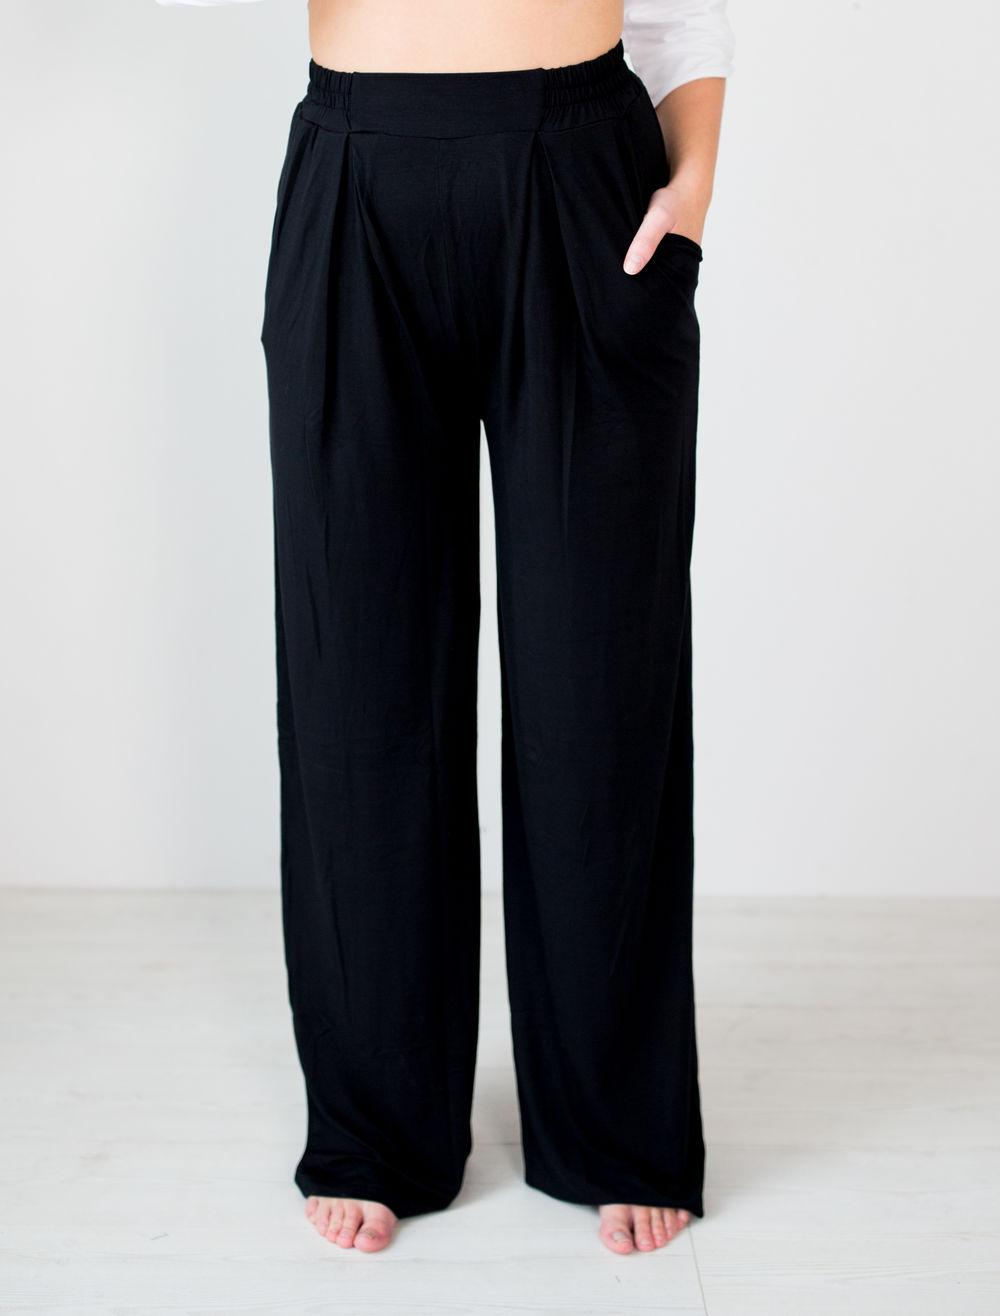 BLAA LOGAN PANTS, BLACK (lahkeen sisämitta 76cm)